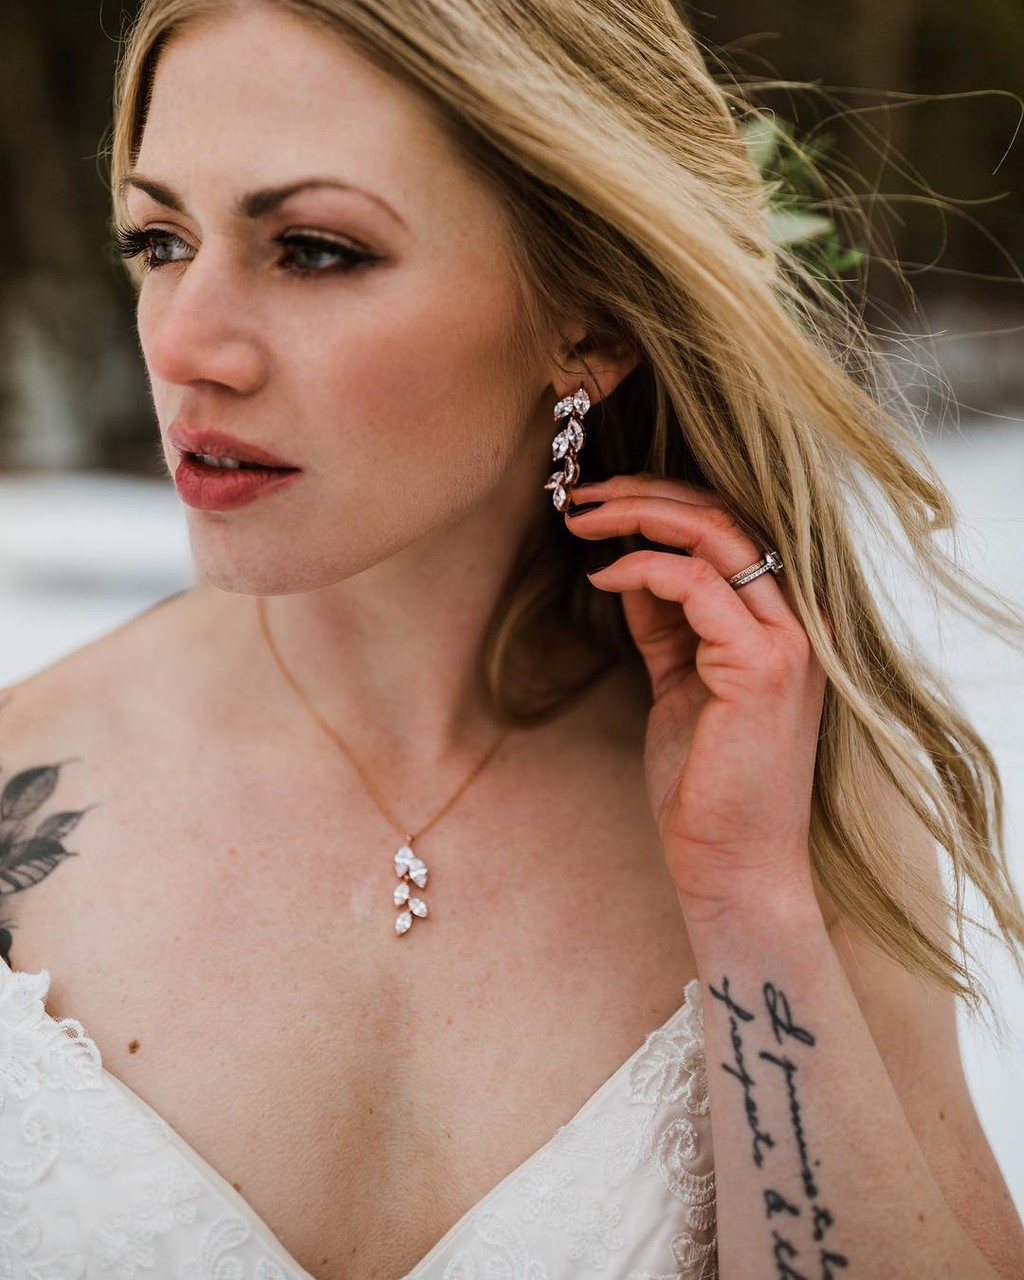 Stunning winter bride wearing 'AVITA' earring necklace set in rose gold. Available for purchase from Lottie-Da Designs on Etsy